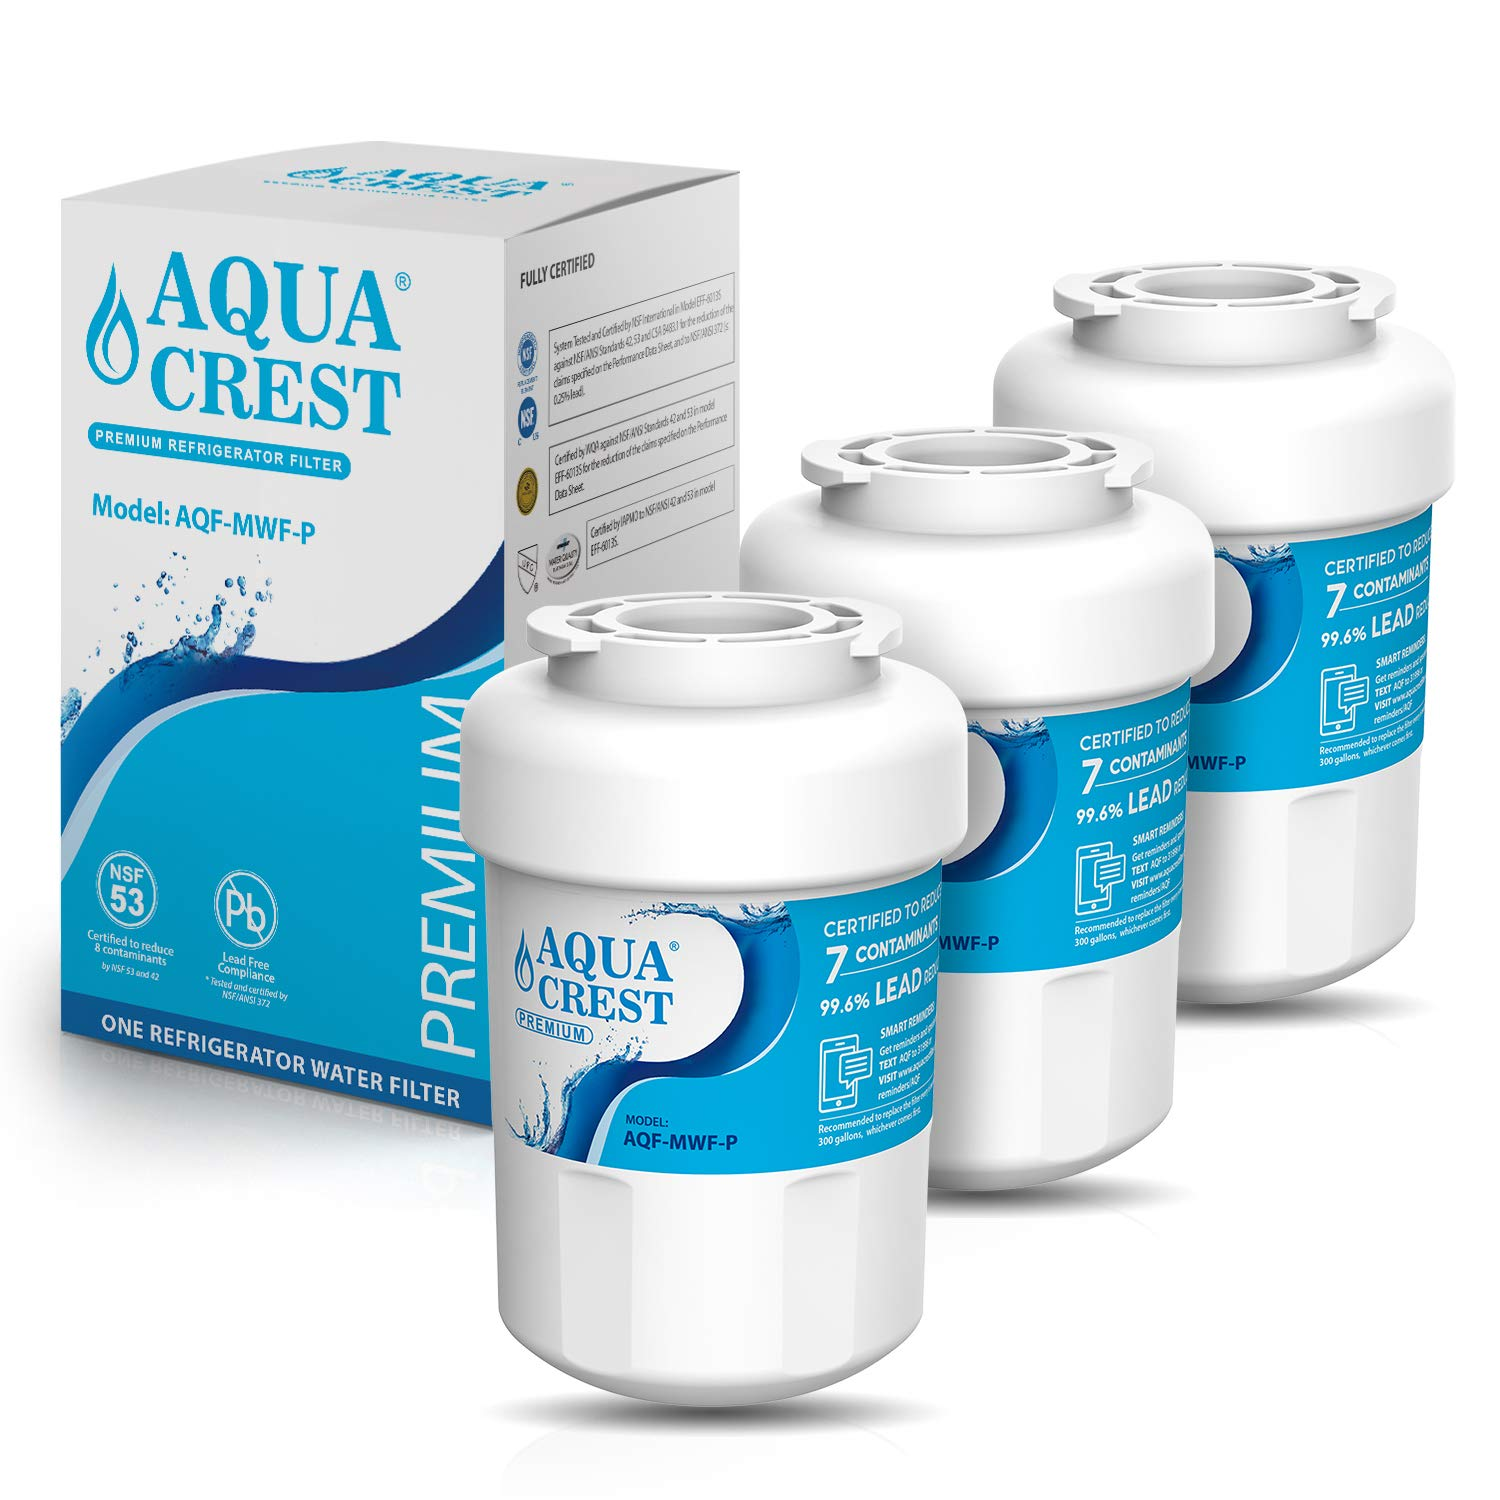 AQUACREST MWF Refrigerator Water Filter, NSF 53&42 Certified to Reduce Lead, Compatible with GE SmartWater MWFP, MWFA, GWF, HDX FMG-1, WFC1201, GSE25GSHECSS, PC75009 (Pack of 3)